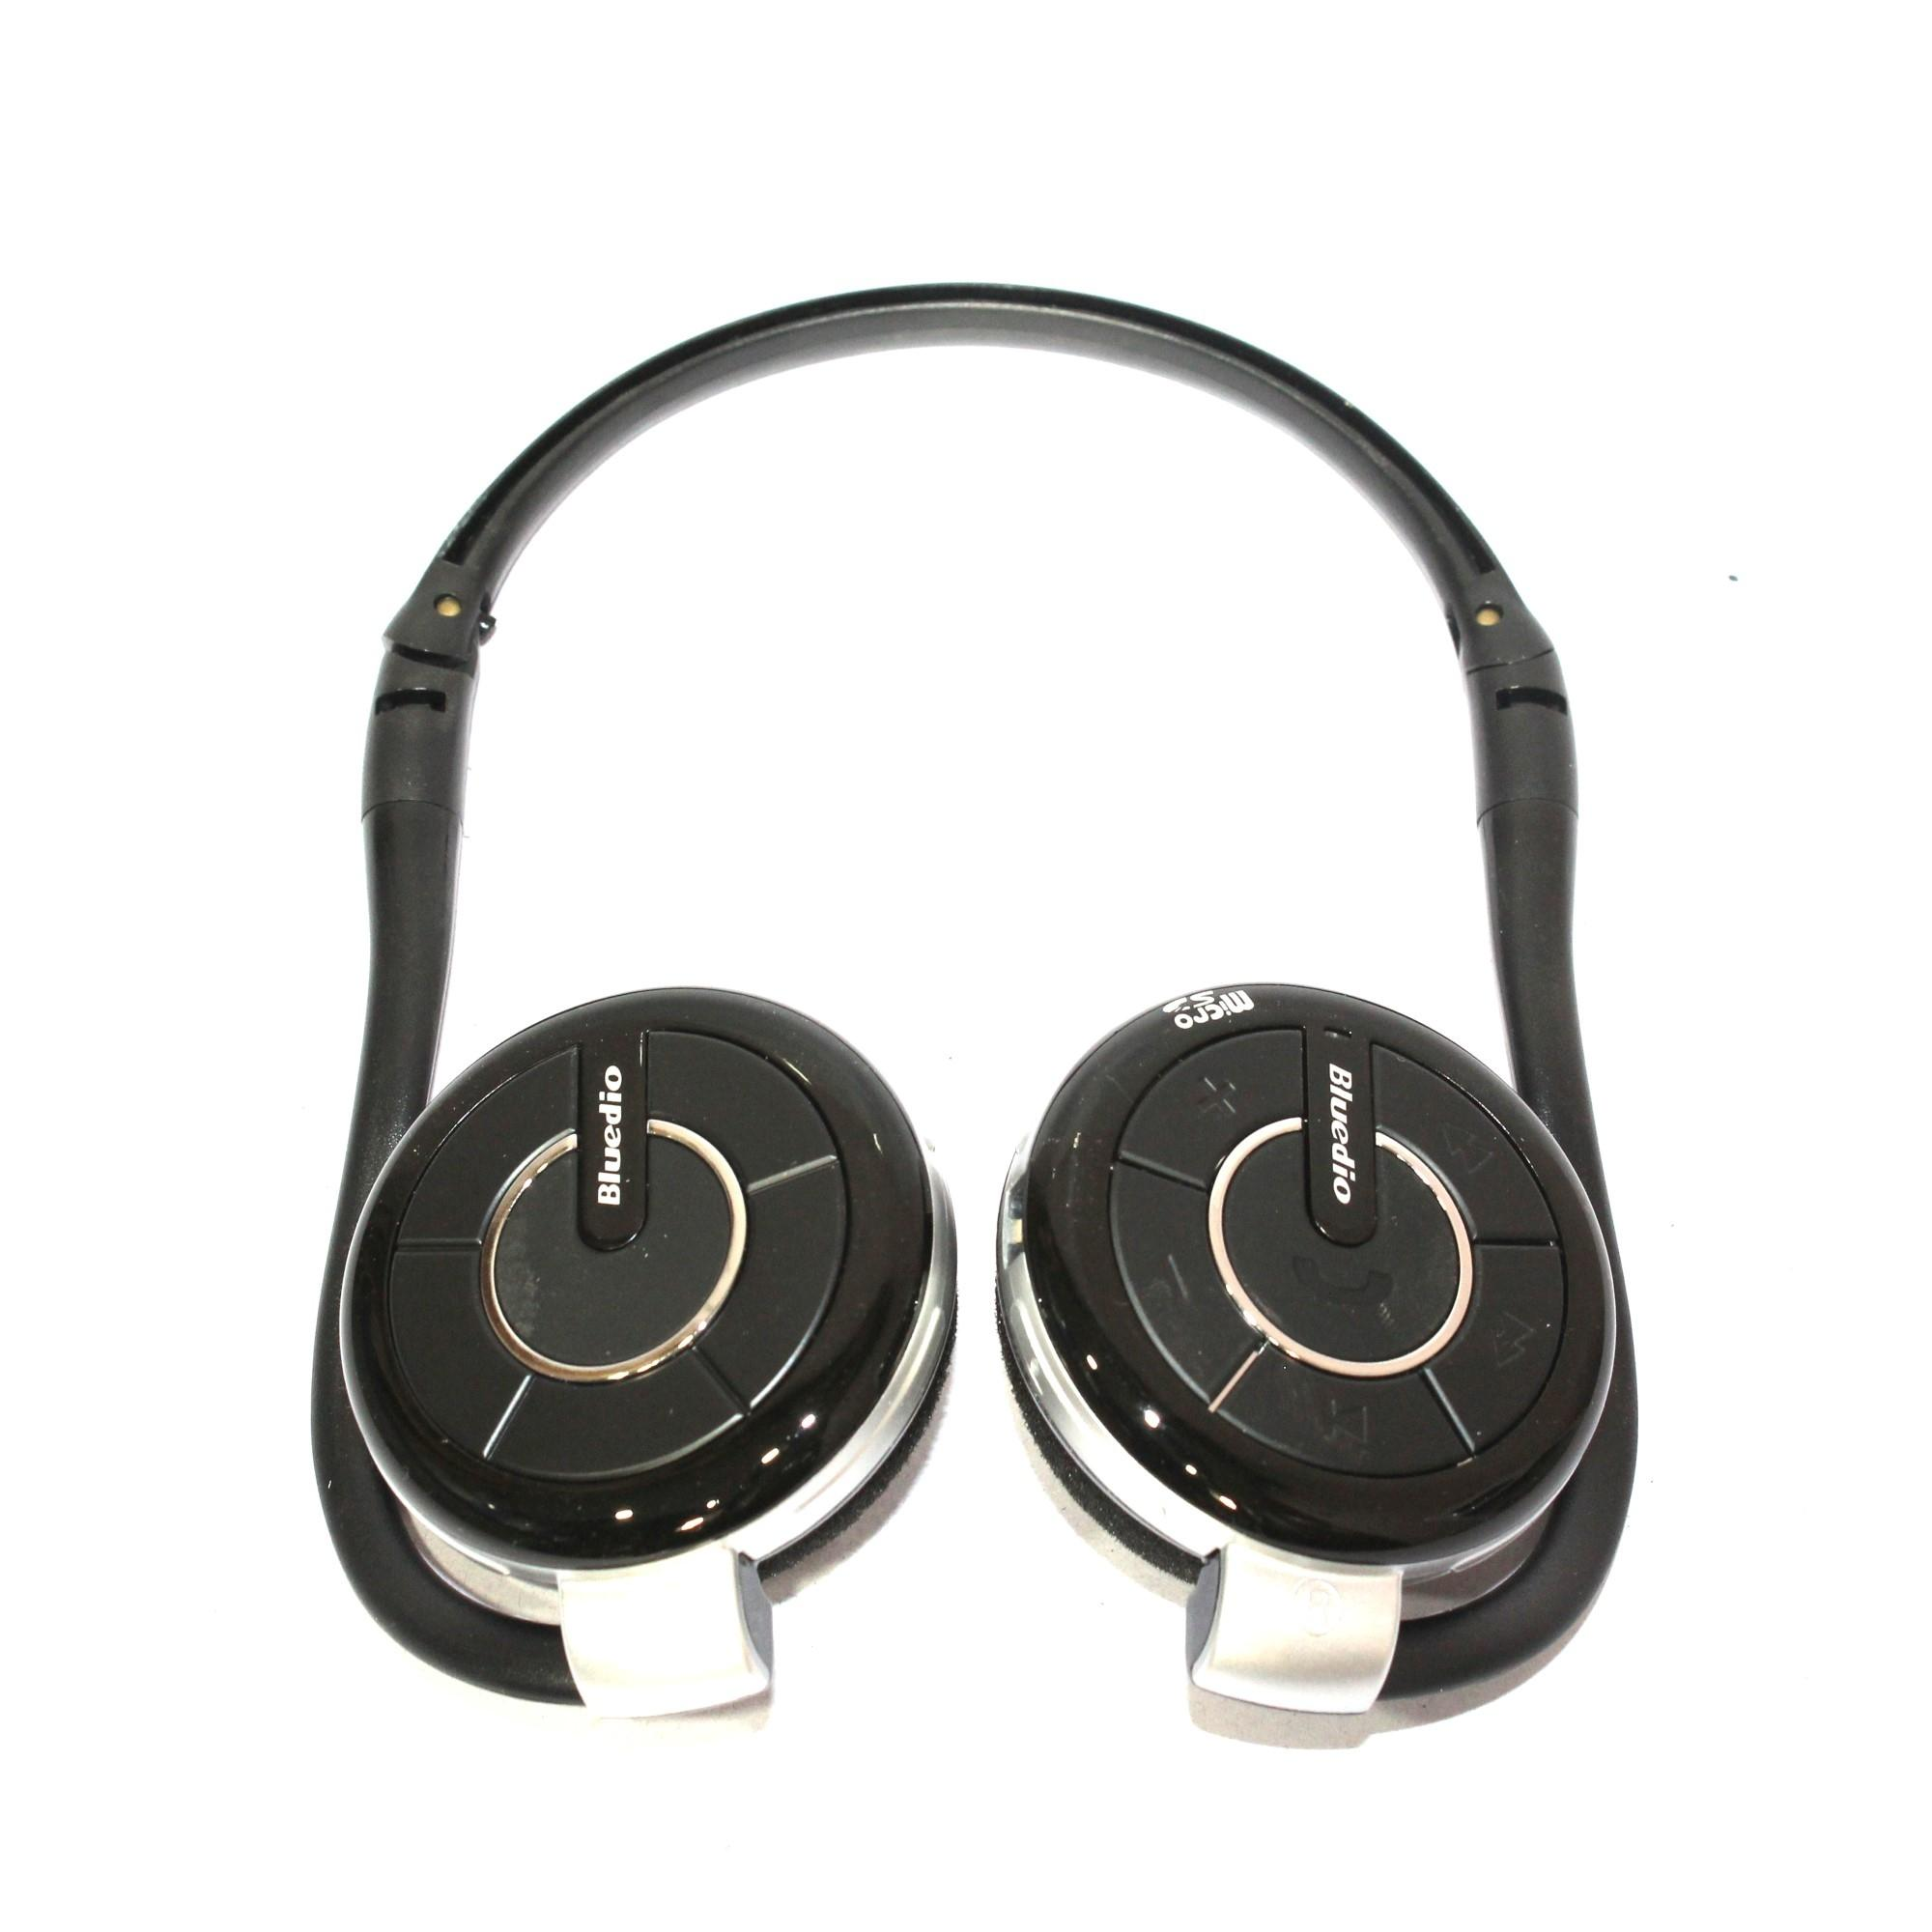 Buy Bluedio Audio At Best Prices Online In Nepal Cck Ks Original Bluetooth 41 Wireless Headphones Tf600 Stereo Headset With Memory Card Slot Black